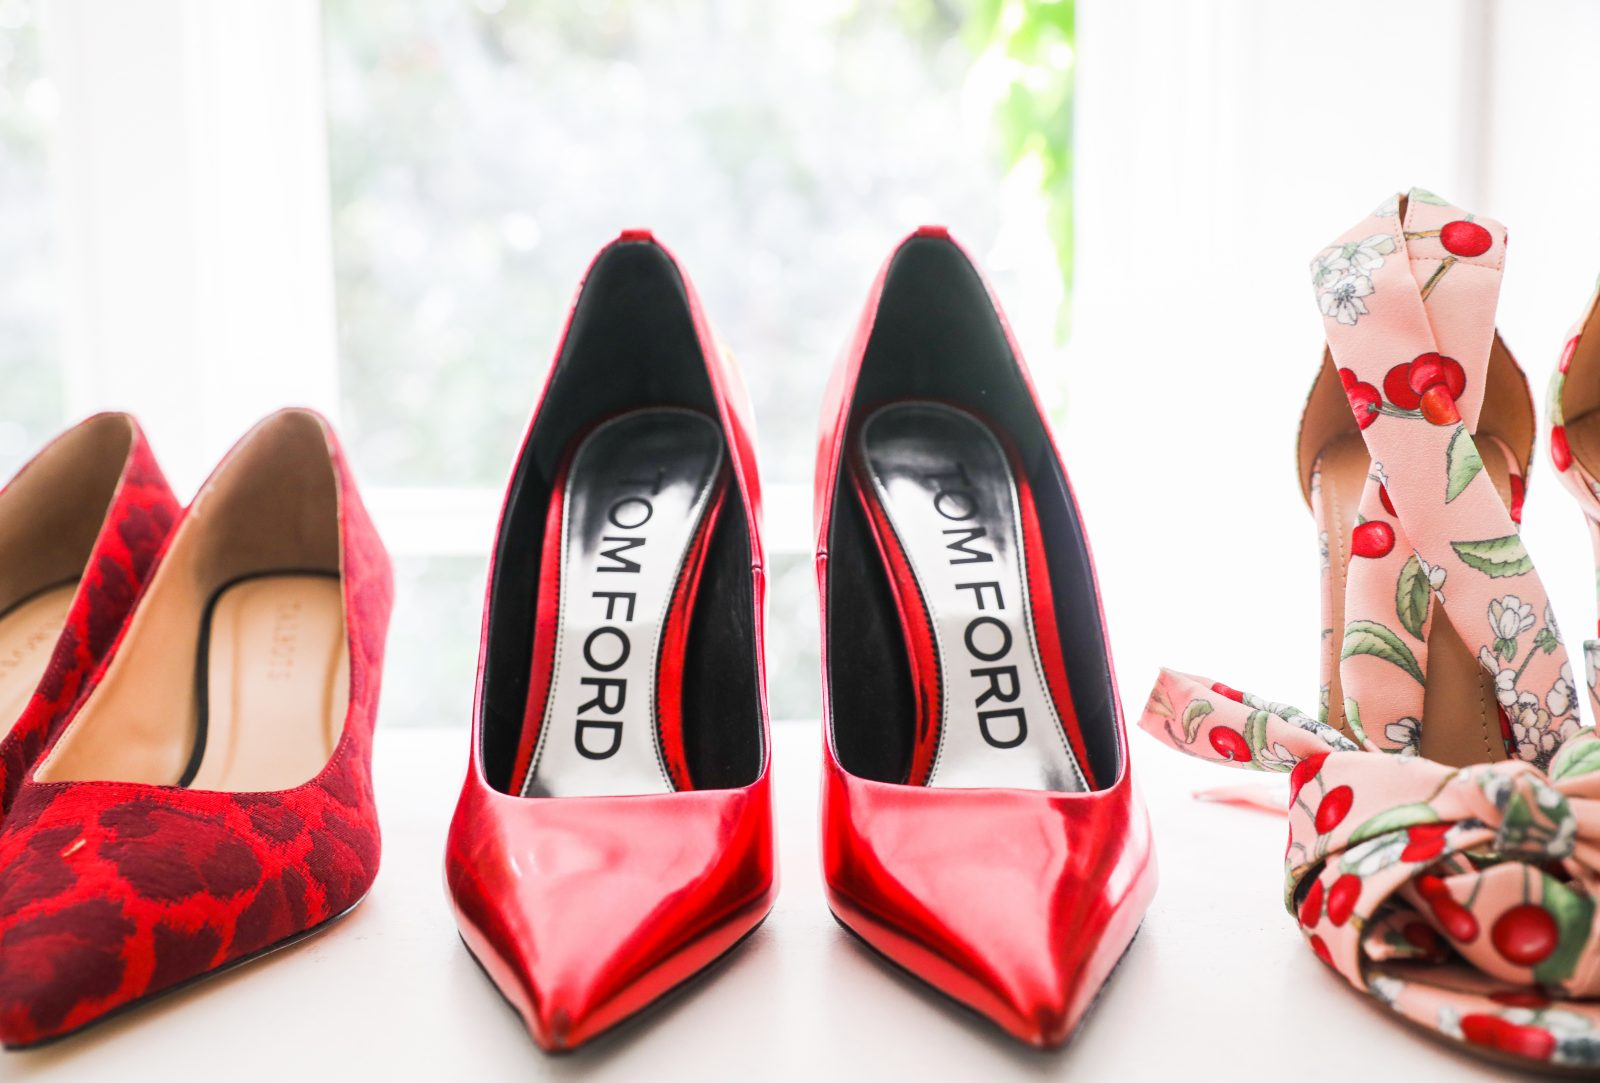 Red tom ford heels with red leopard and red cherry patterned vintage heels